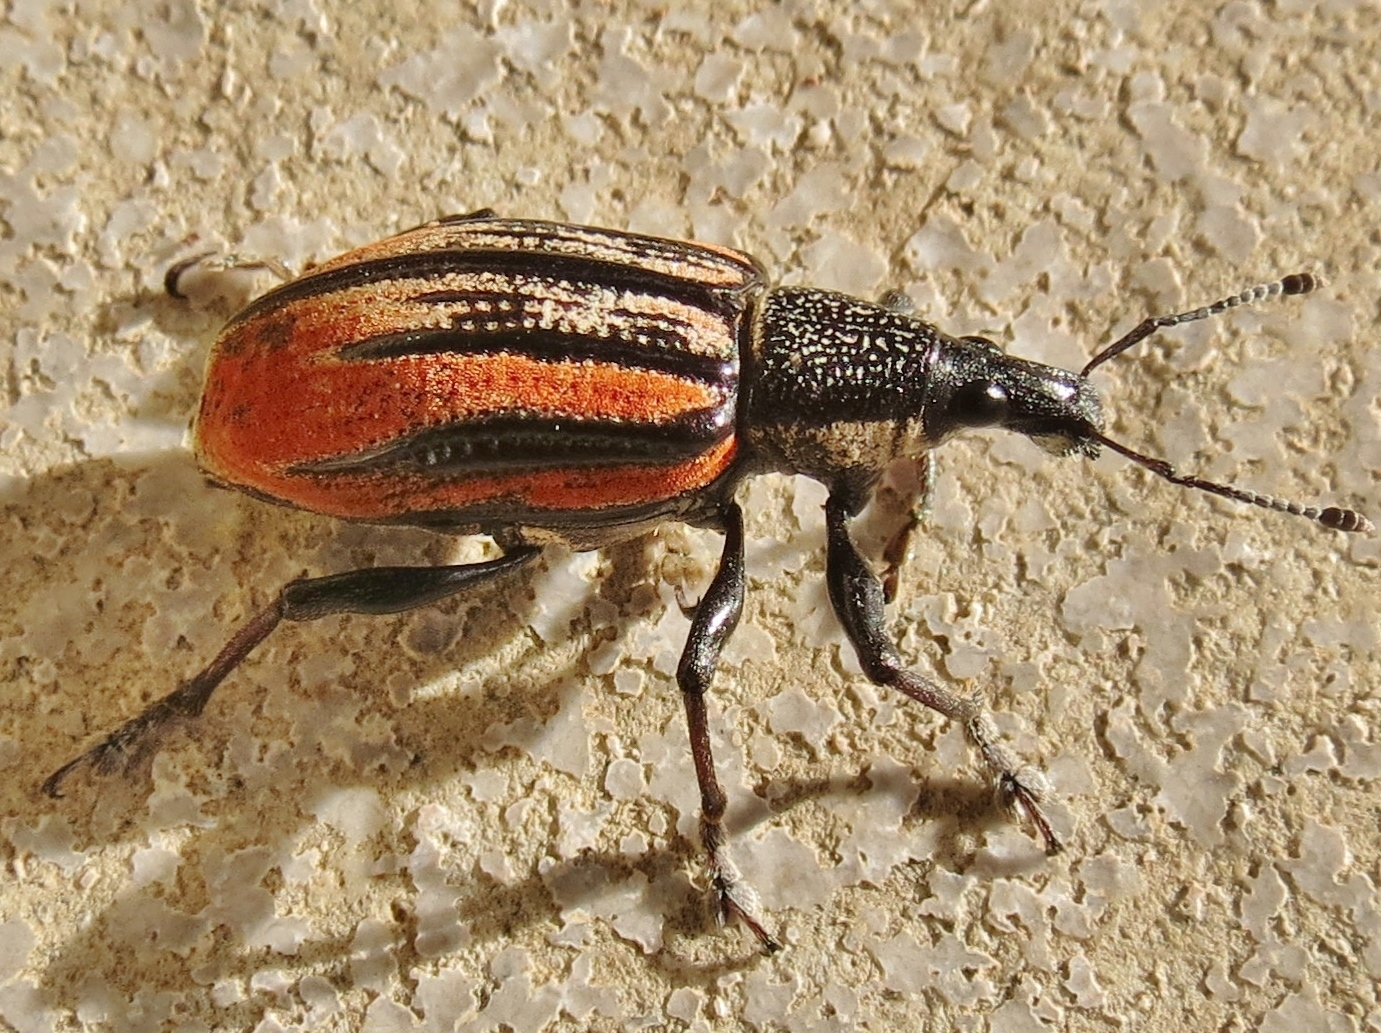 Image of Diaprepes Root Weevil